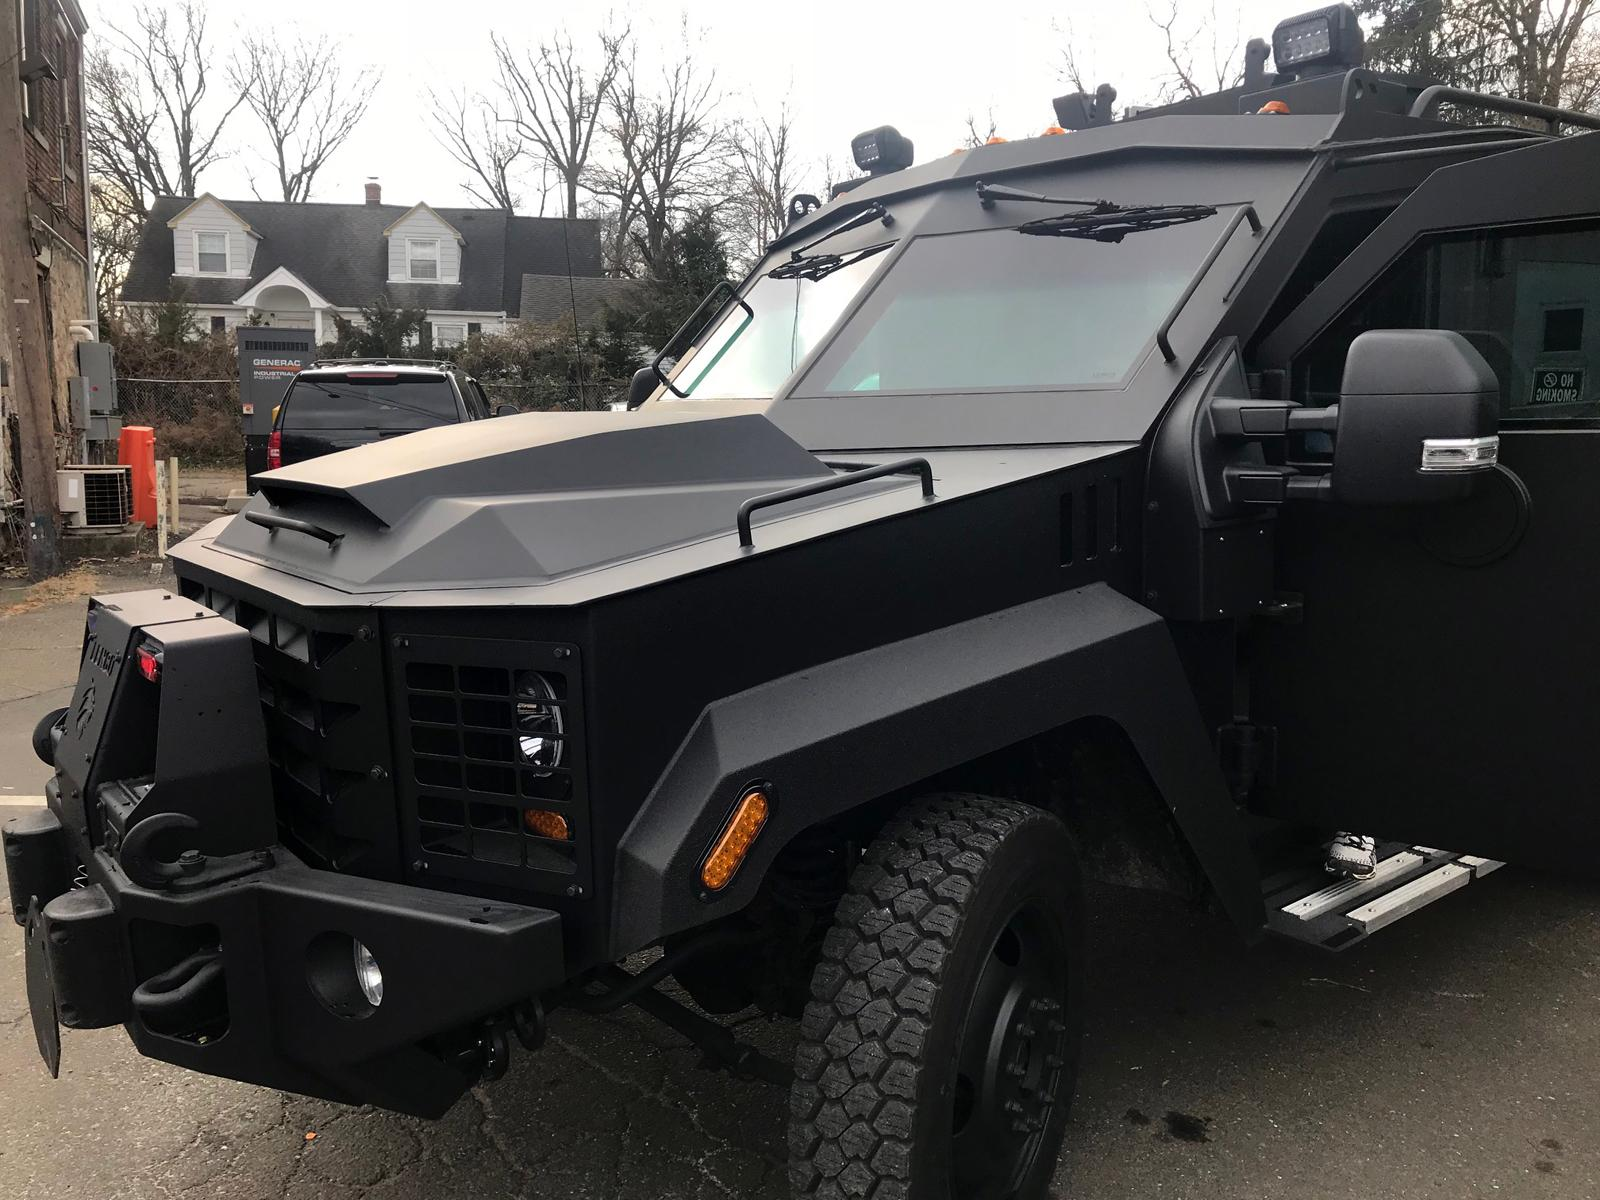 stamford police purchase  230 000 armored vehicle